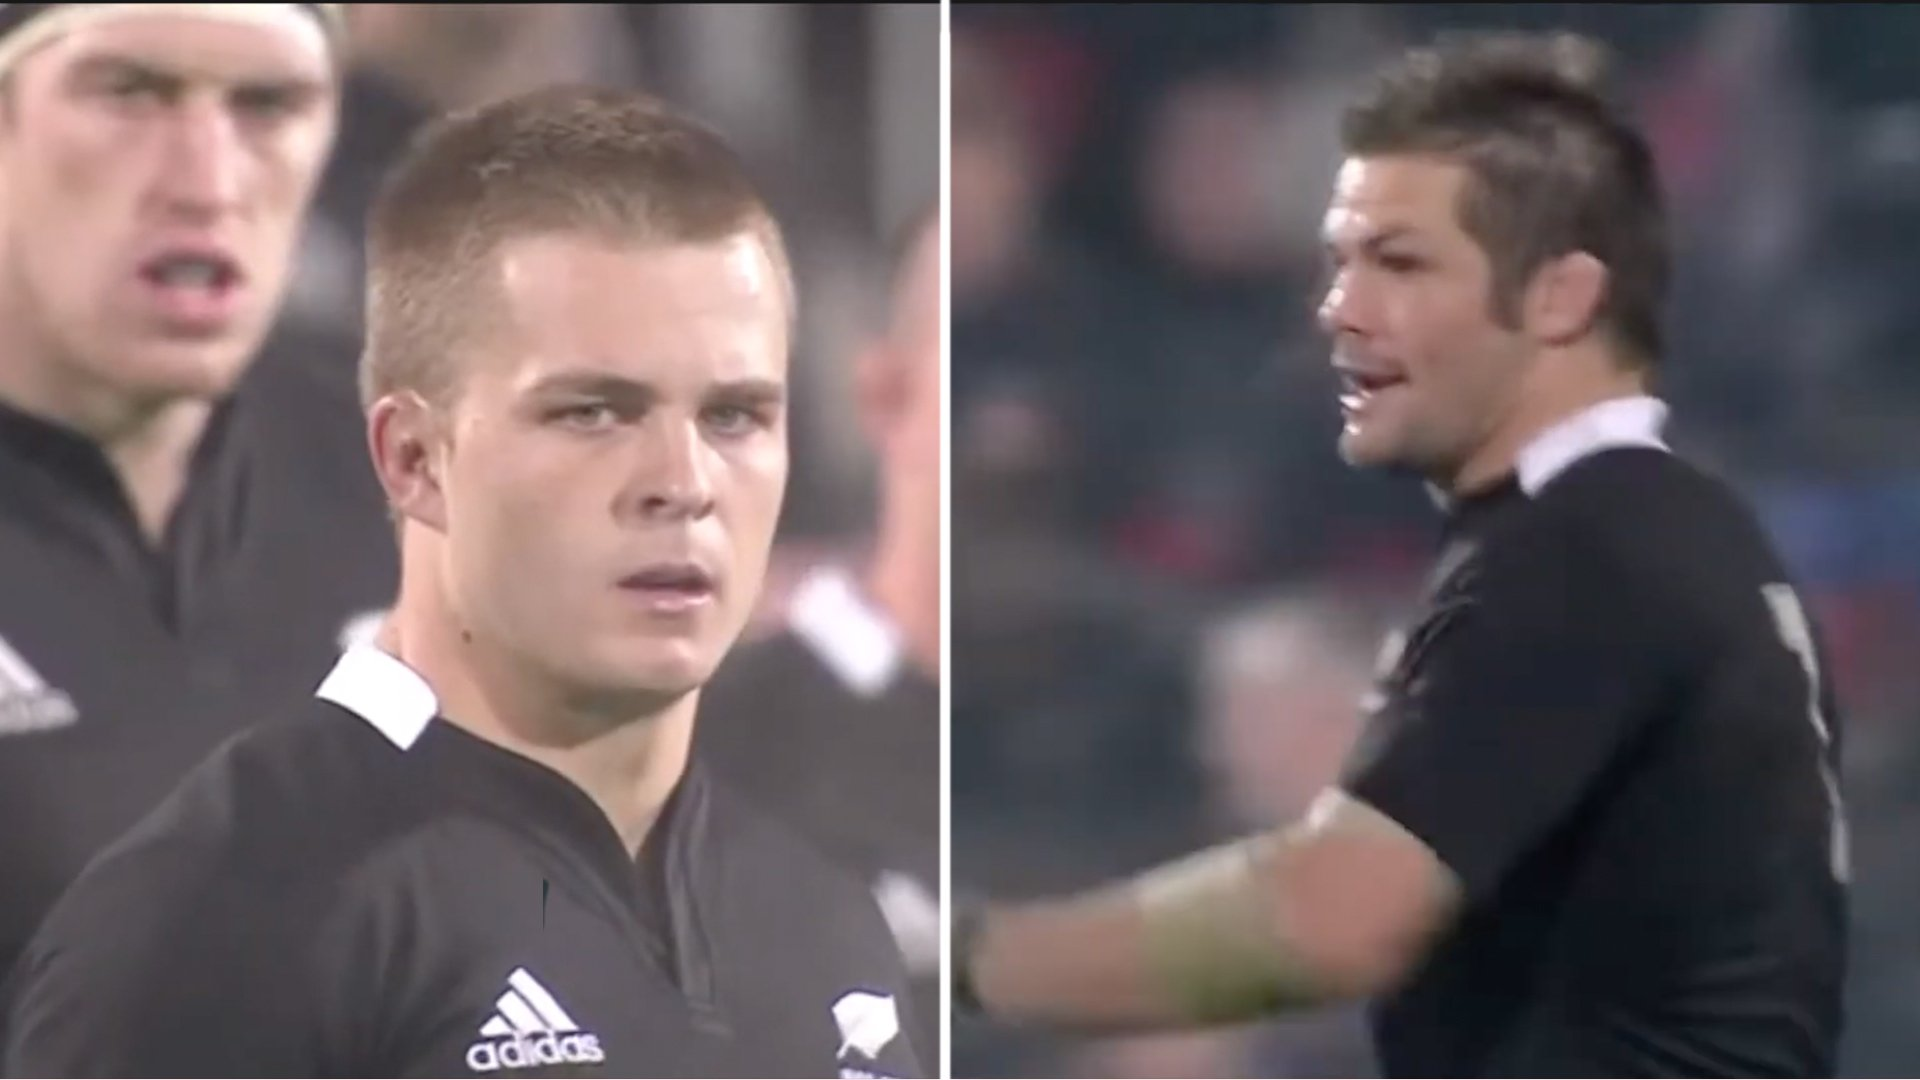 The Sam Cane All Blacks debut that convinced the Rugby world he was the next Richie McCaw